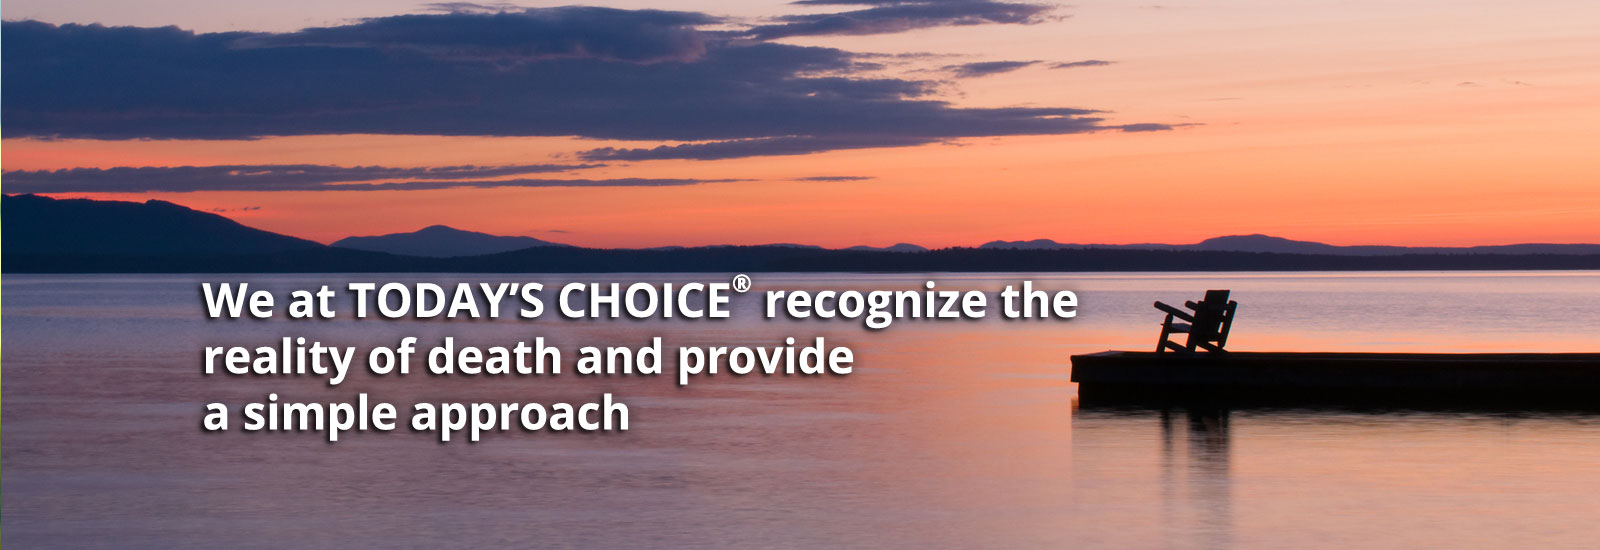 We at Today's Choice recognize the reality of death and provide a simple approach to cremation